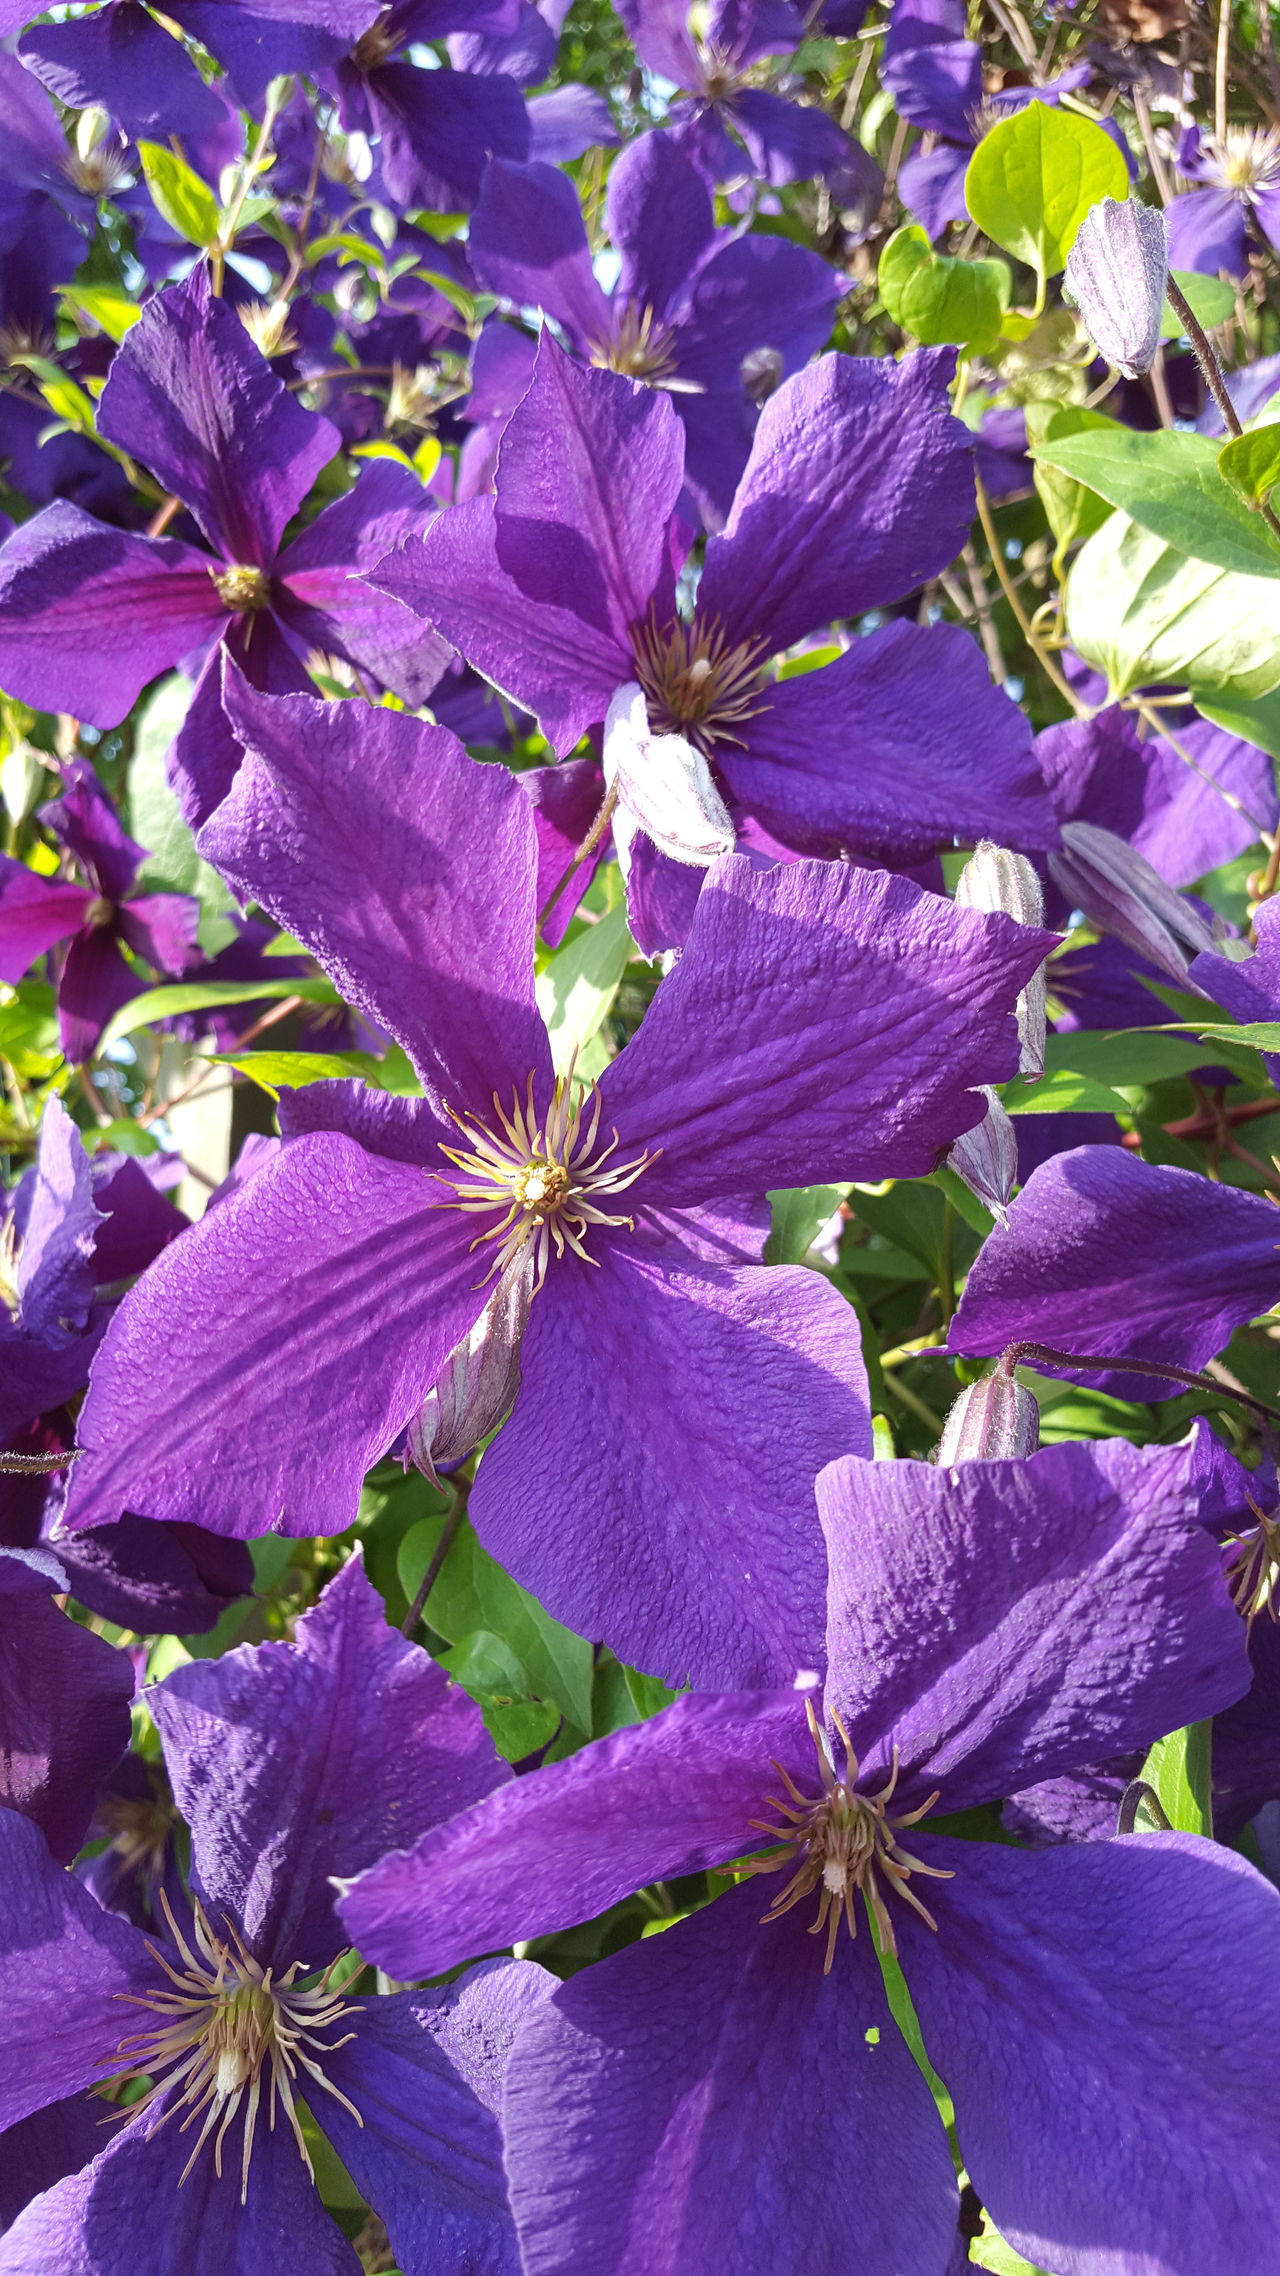 Purple Flower Close-up Plant Nature Flower Head Freshness Fragility Beauty In Nature No People Outdoors Clematis Garden Bloom Blooming Blooming Flower